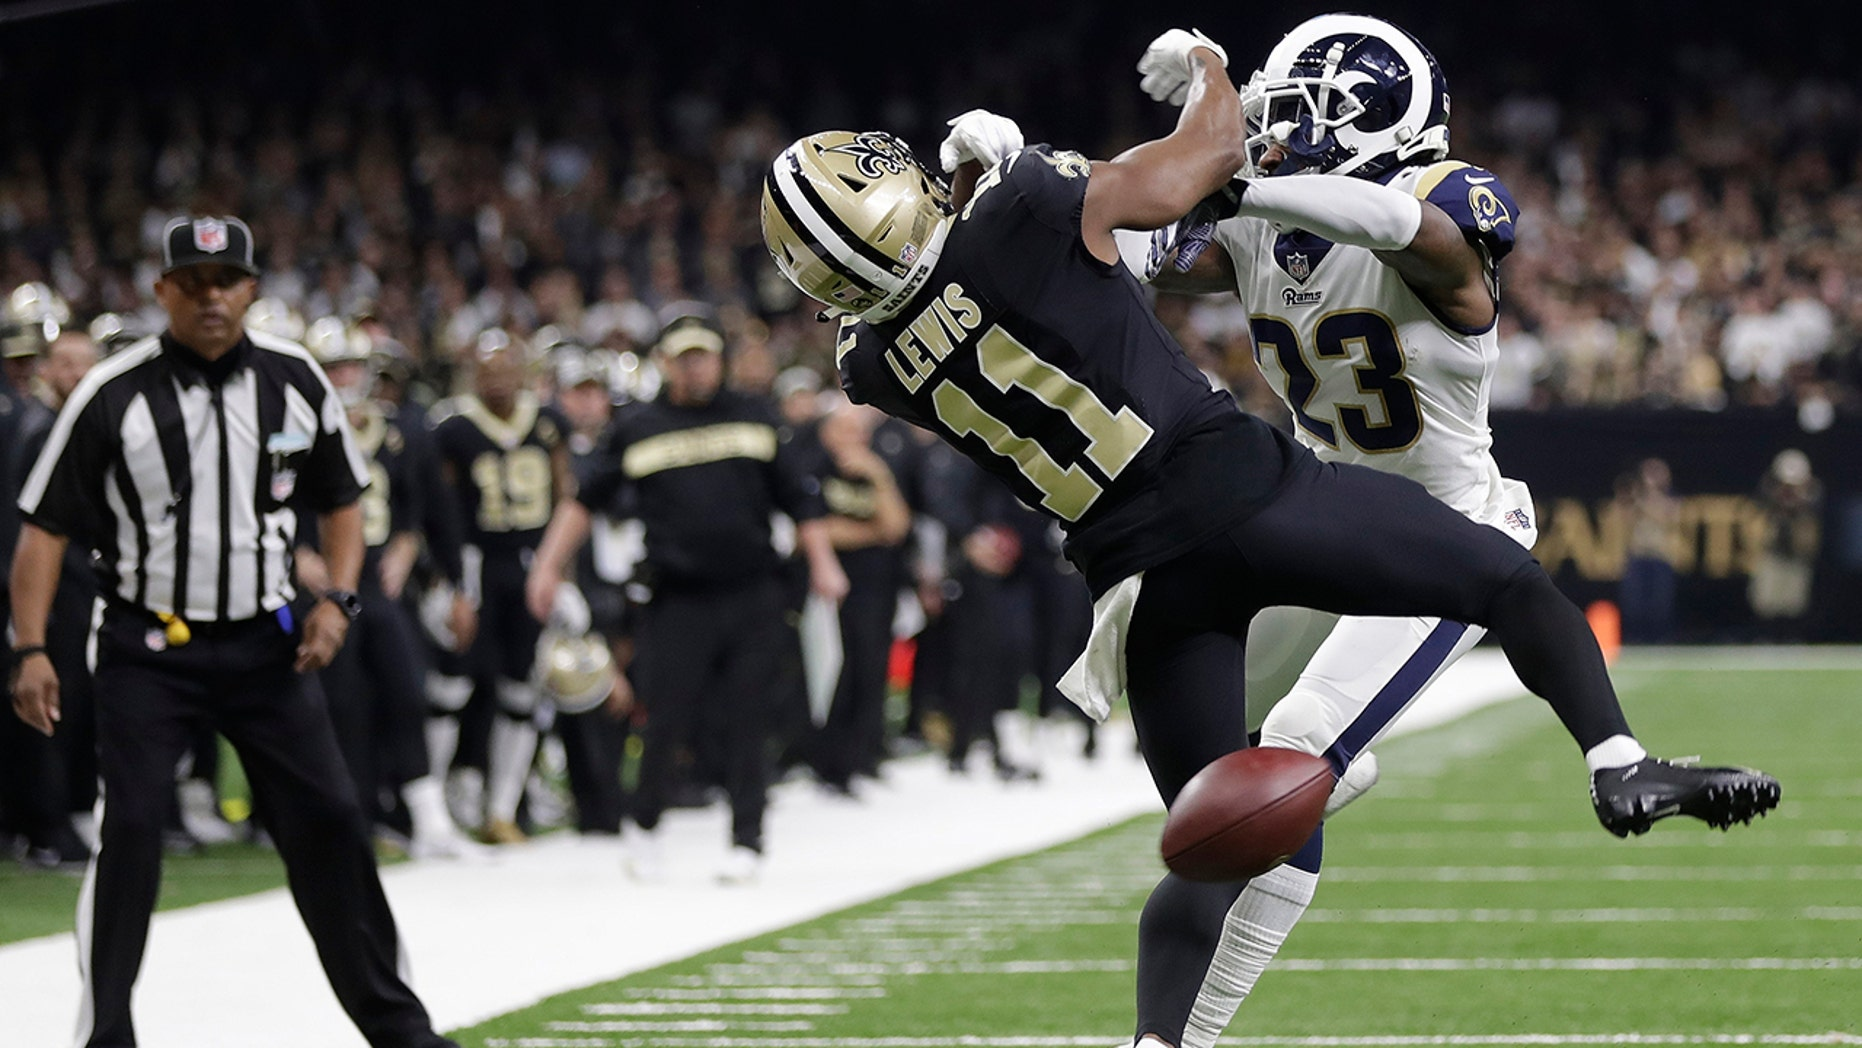 "New Orleans Saints Broadcaster Tommylee Lewis (11) is working to catch up against the protection of Los Angeles Rams Nickell Robey-Coleman (23) during the second half of the NFC Championship game, January 20, 201<div class=""e3lan e3lan-in-post1""><script async src=""//pagead2.googlesyndication.com/pagead/js/adsbygoogle.js""></script>